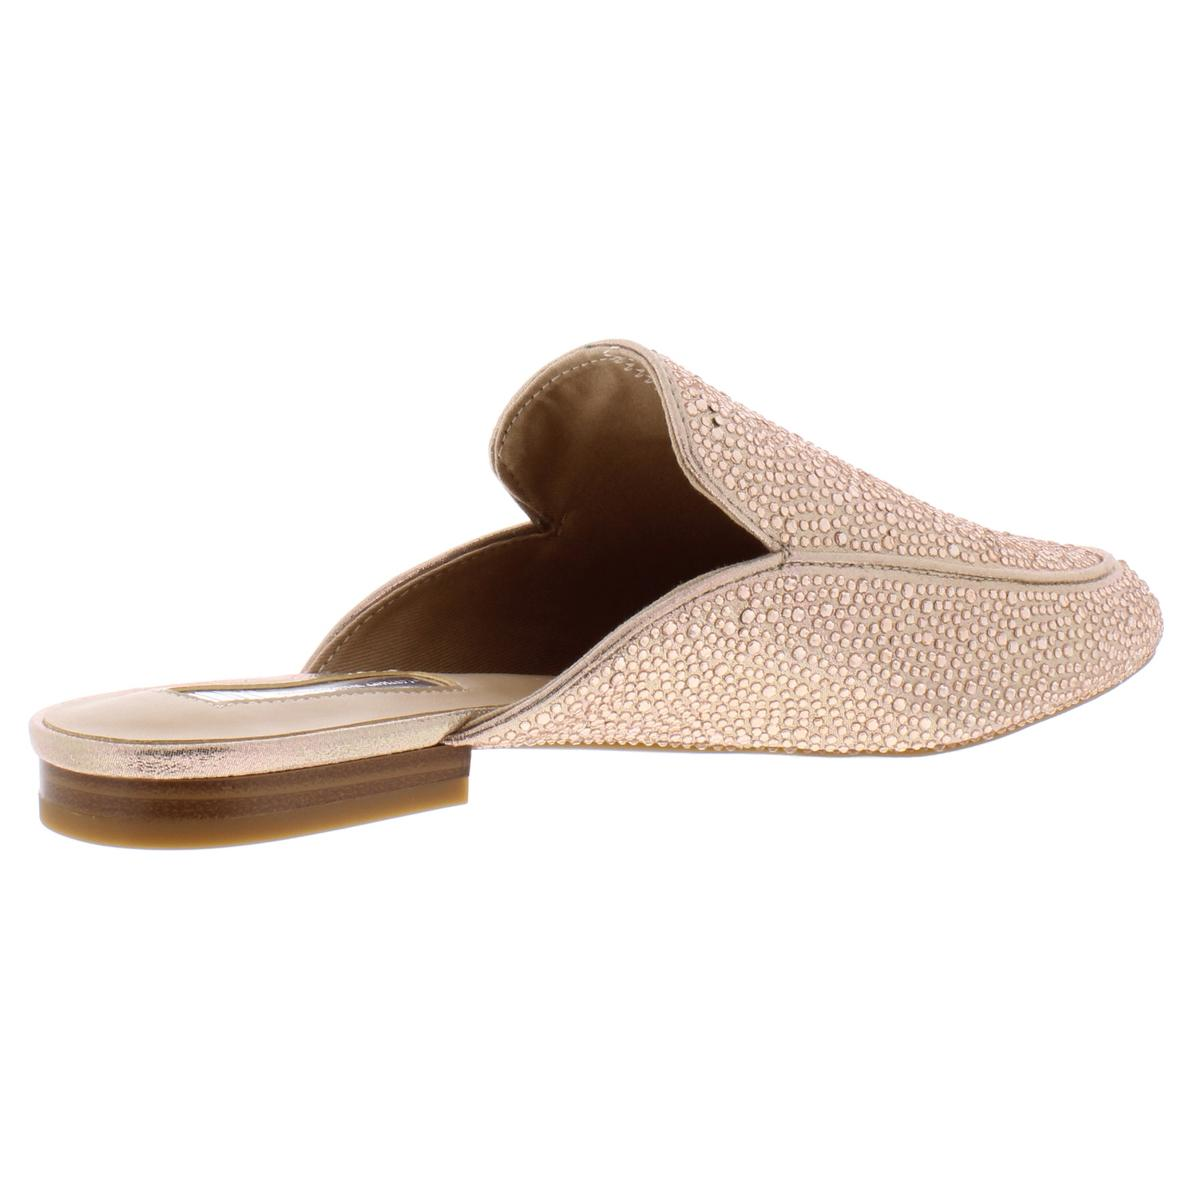 INC-Womens-Gannie12-Embellished-Loafer-Round-Toe-Mules-Flats-BHFO-9730 thumbnail 8